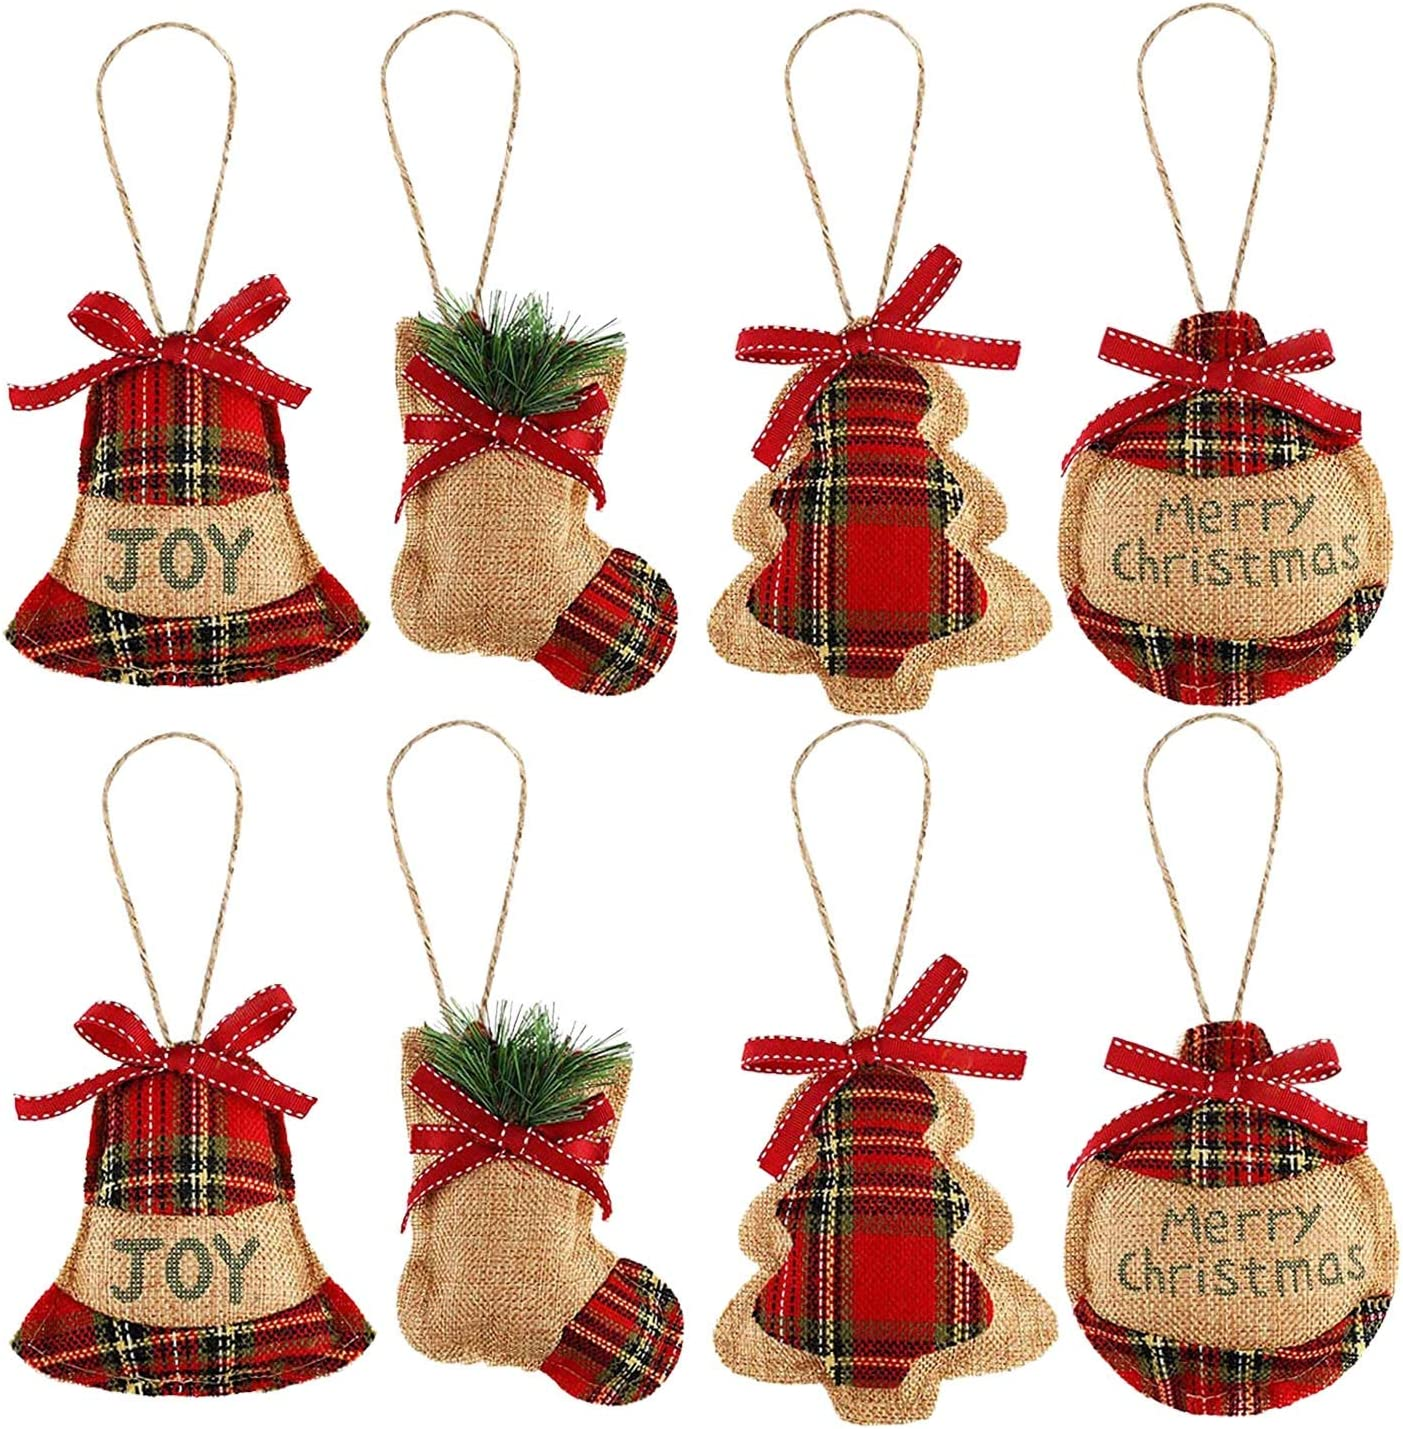 L 8 Pcs Christmas Tree Ornaments Xmas Hanging Decorations: Christmas Stocking, Ball, Tree and Bell (4 Styles) for Christmas Holiday Party Home Decor